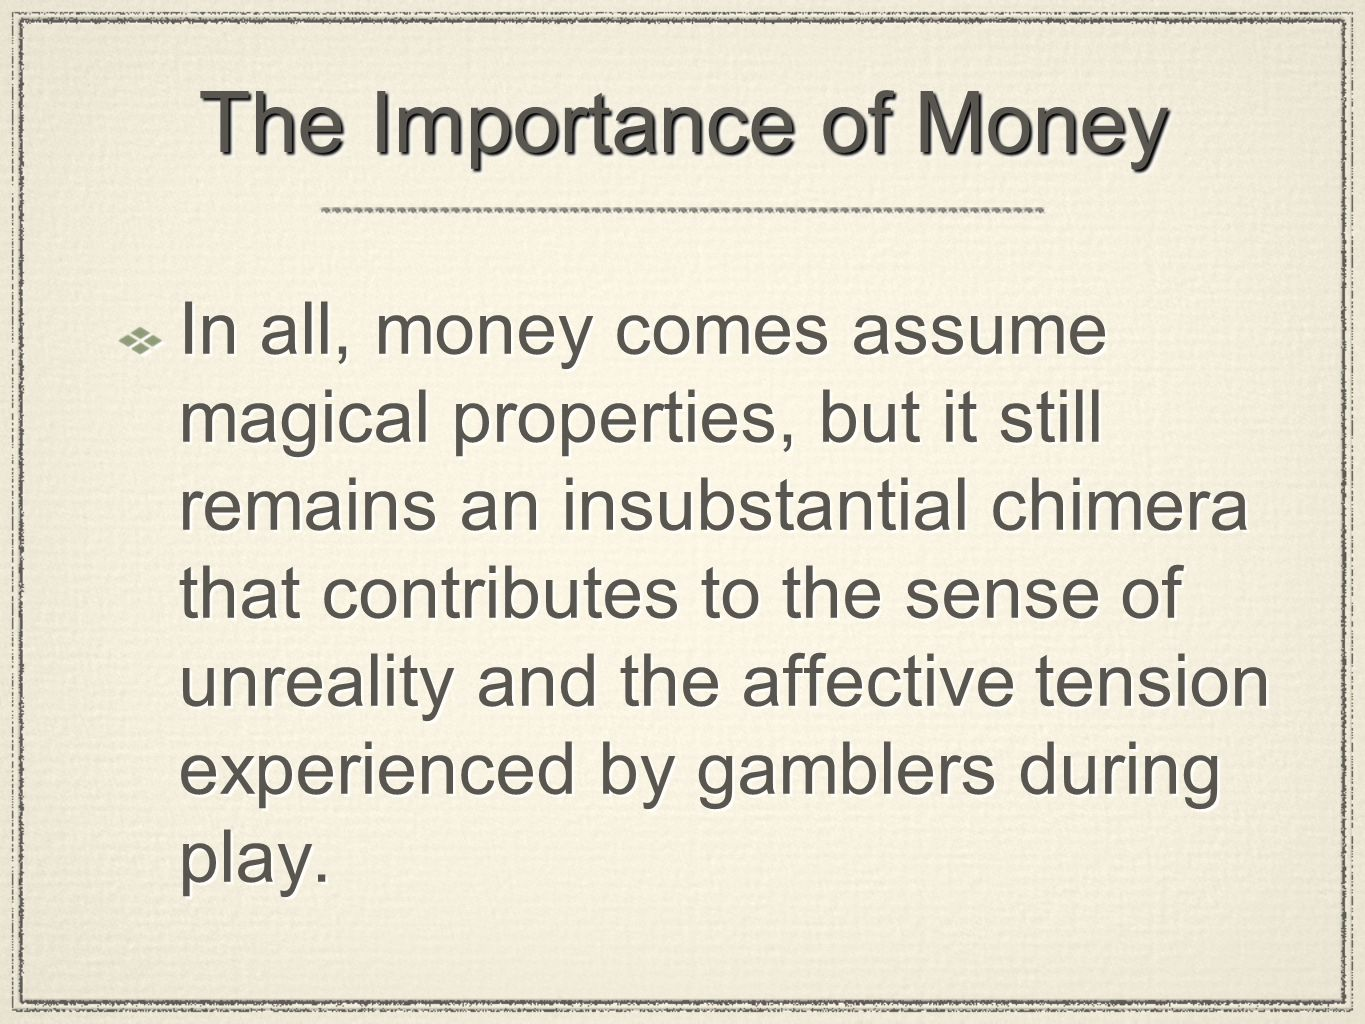 The Importance of Money In all, money comes assume magical properties, but it still remains an insubstantial chimera that contributes to the sense of